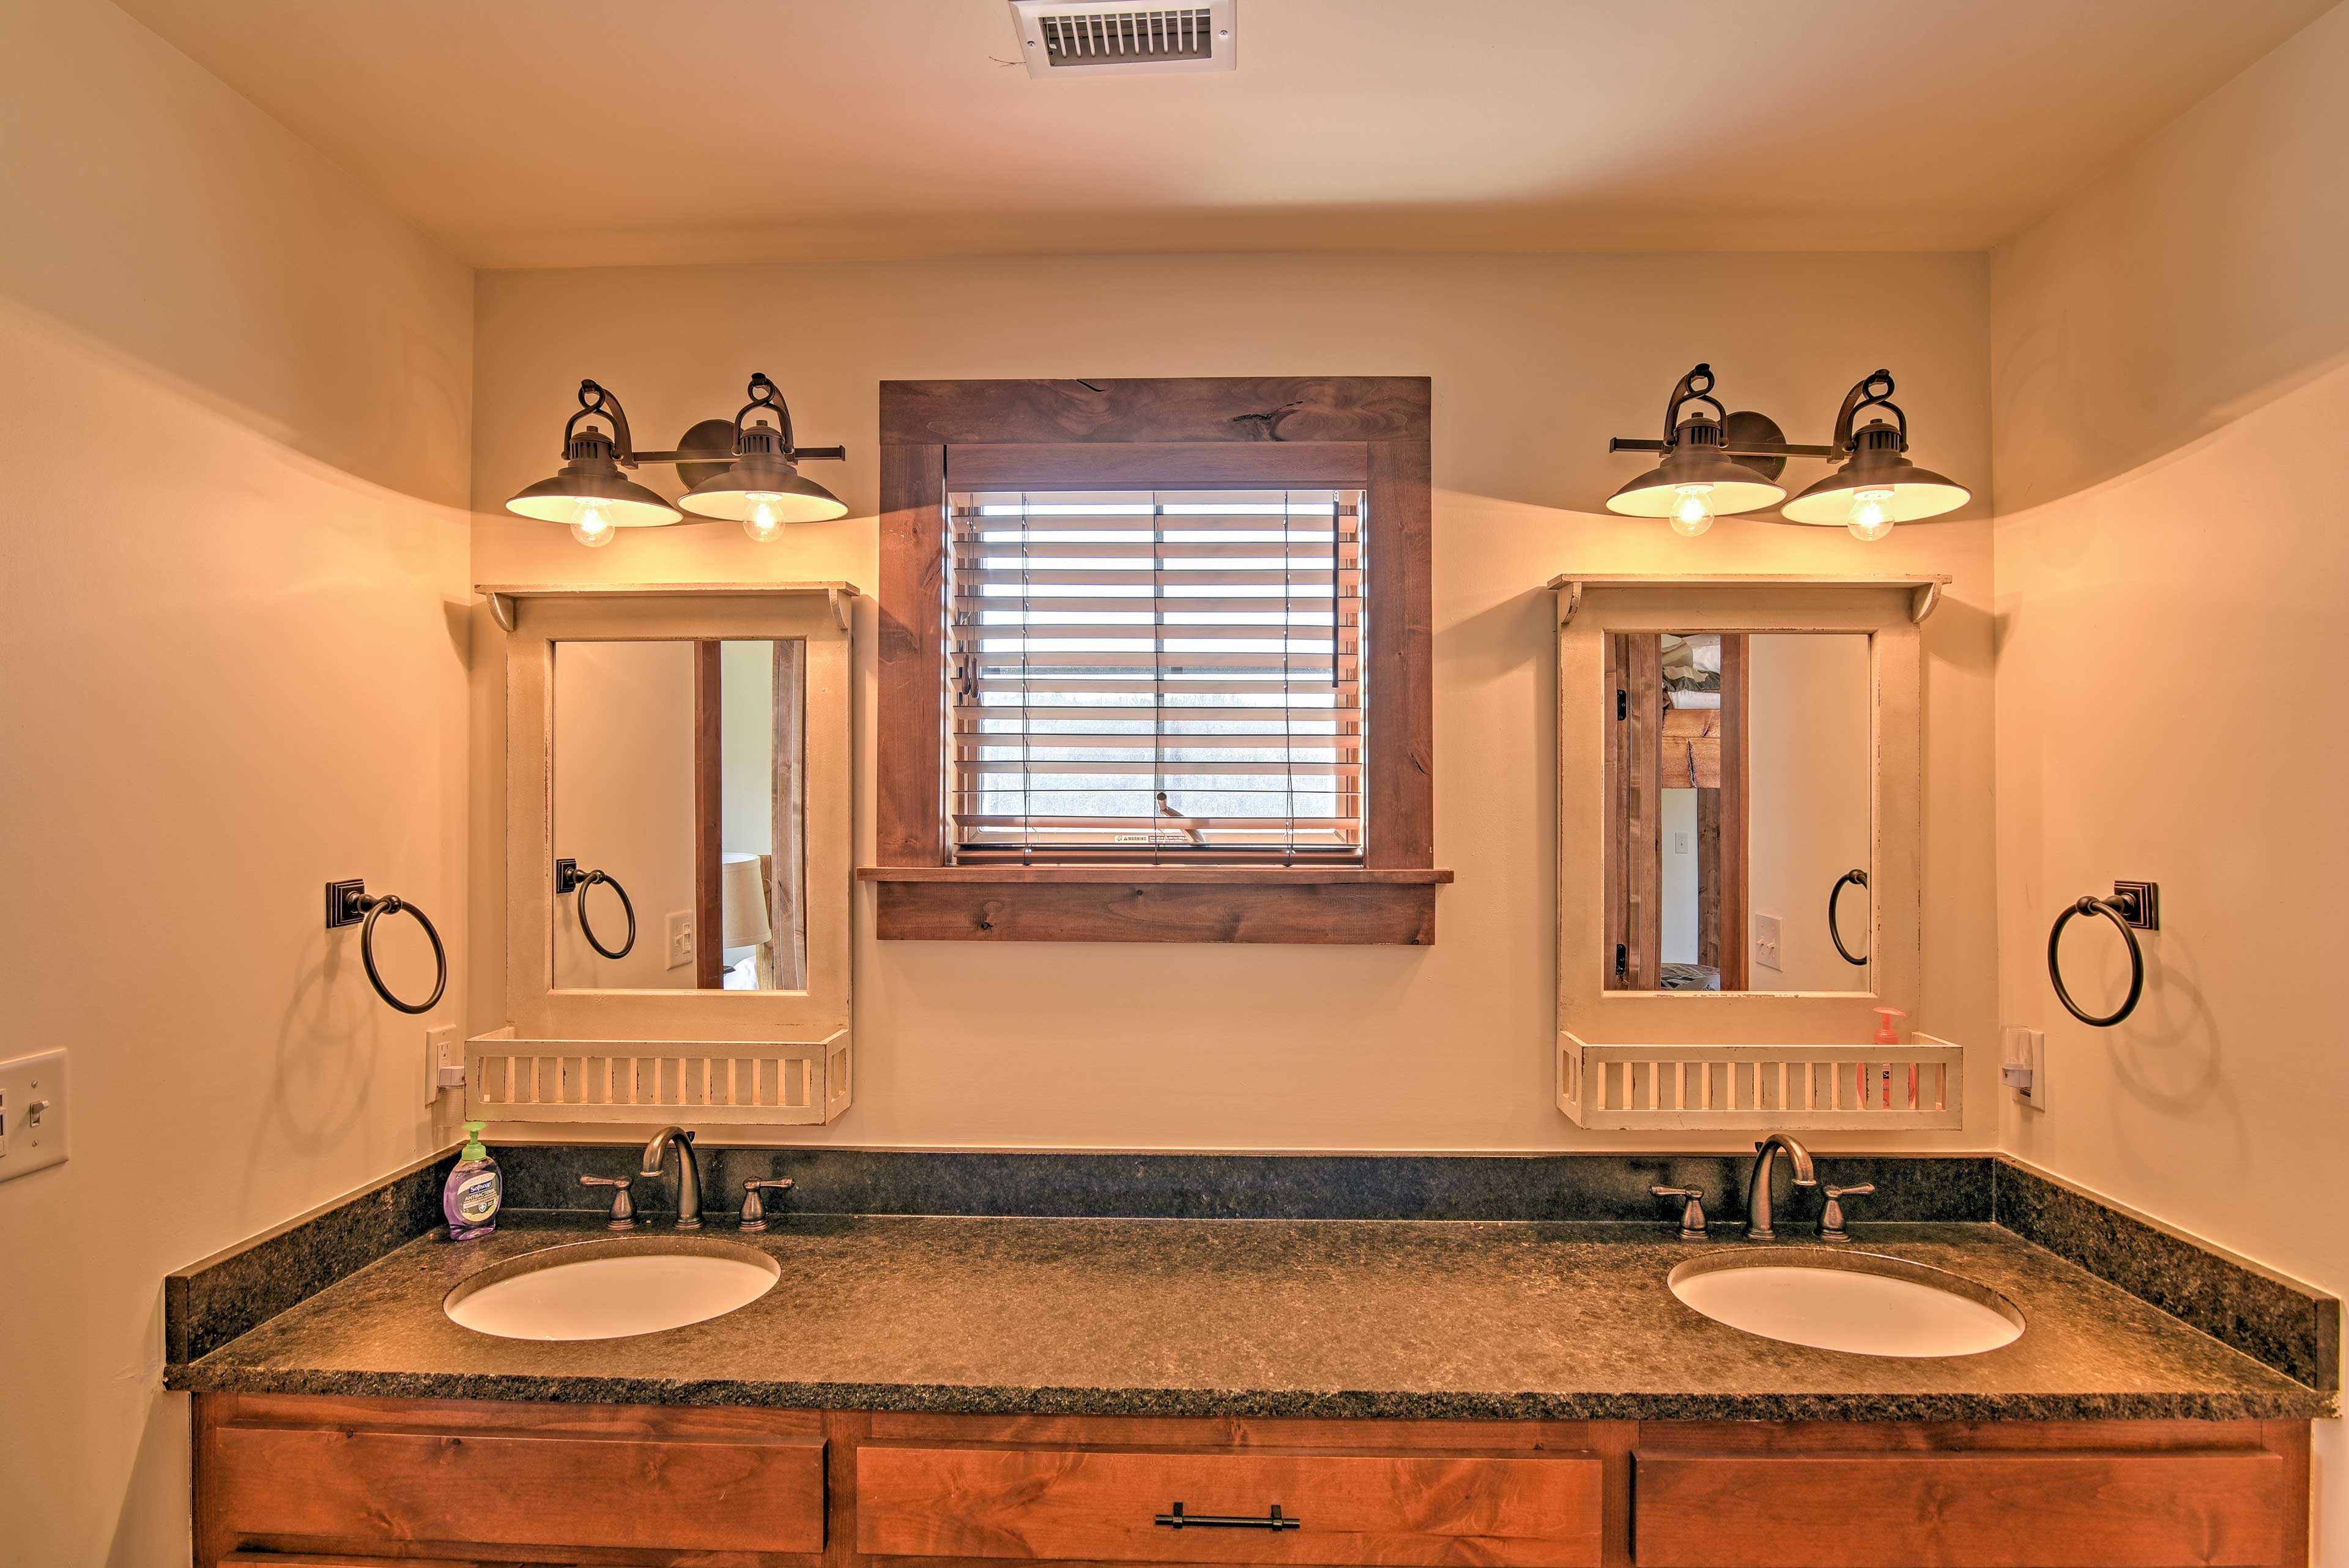 Enjoy plenty of counterspace offered by this luxurious bathroom.